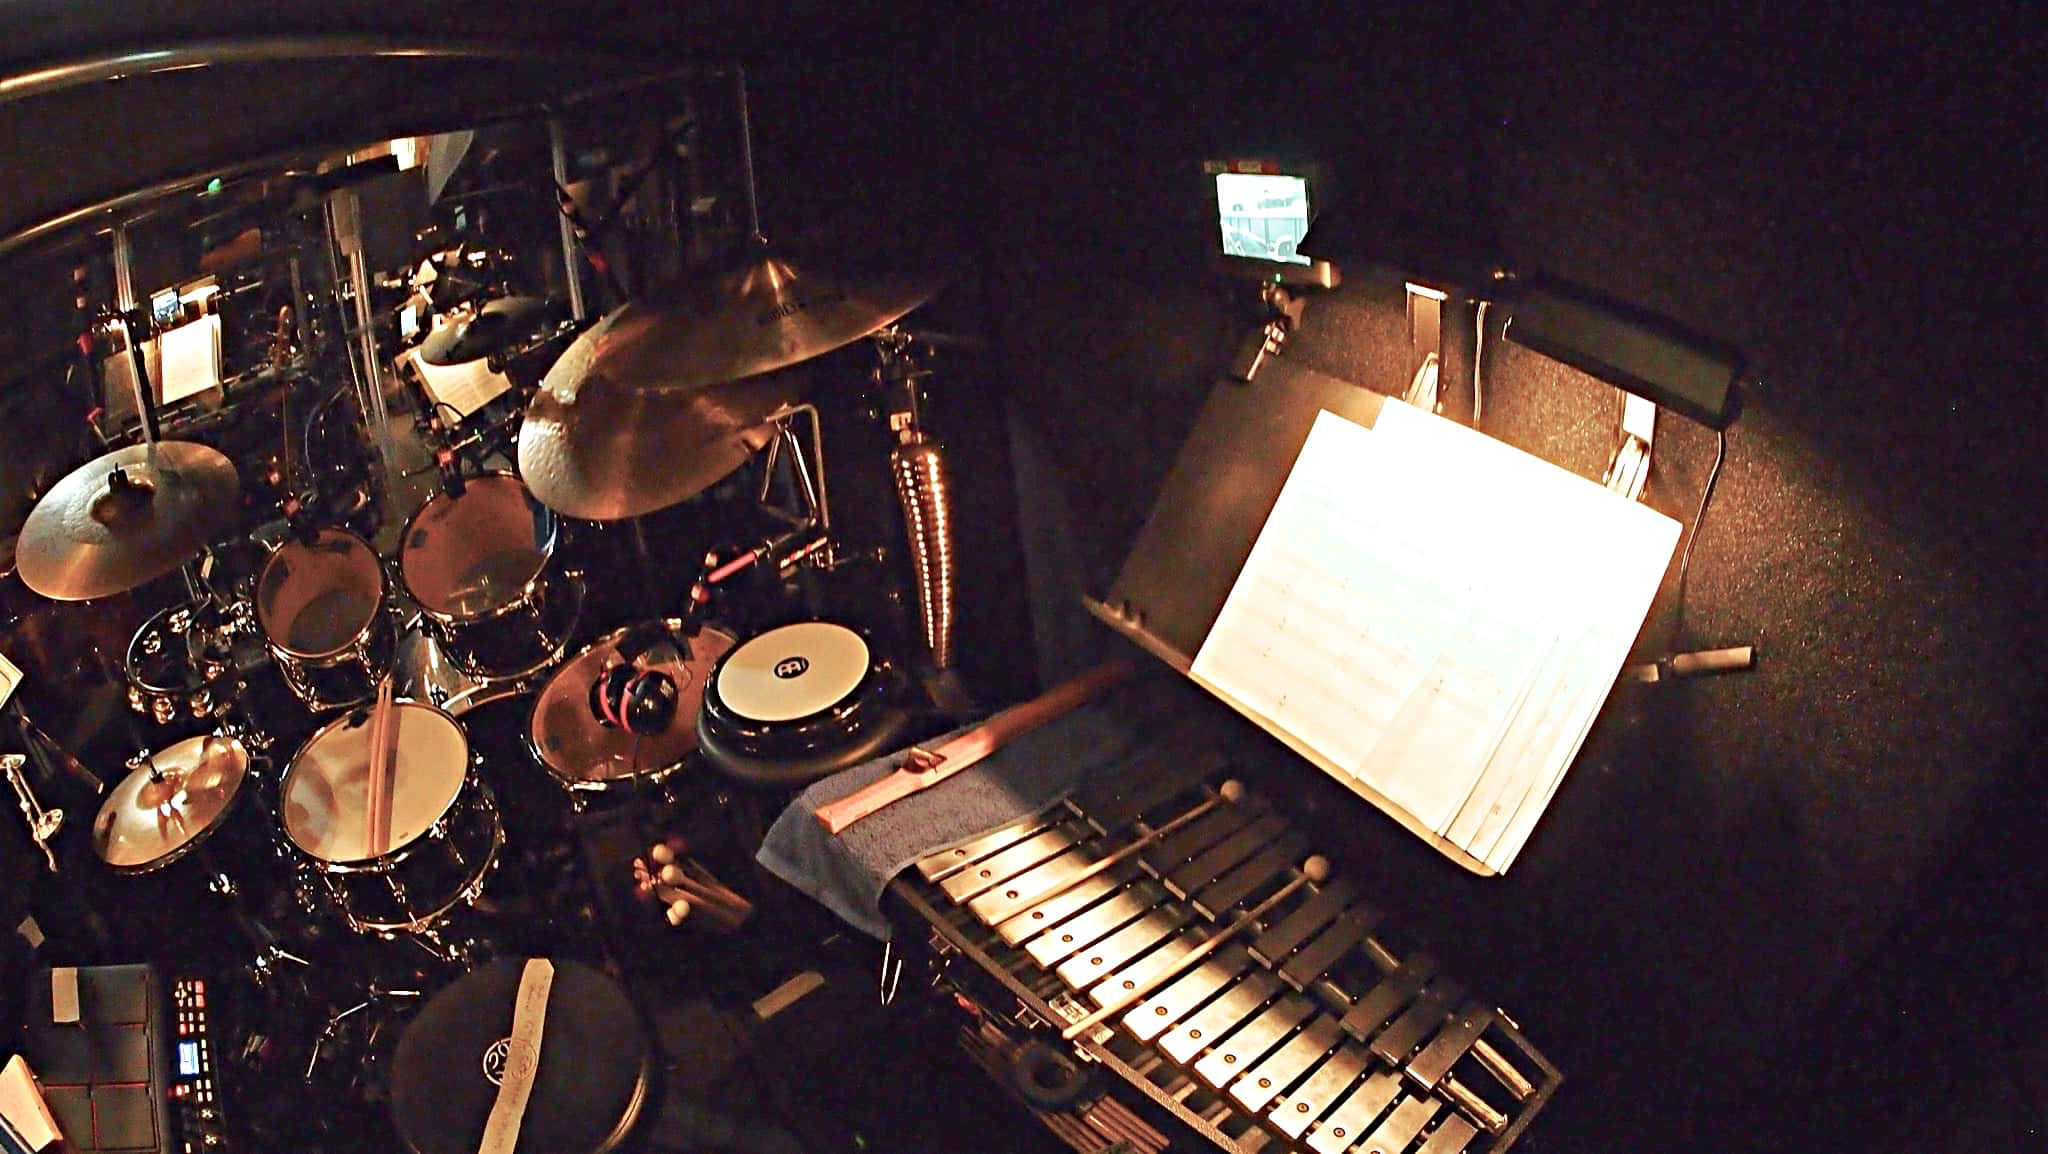 Greg Germann's combined book setup for the National tour of the Broadway show Finding Neverland at the Paramount Theatre in Seattle, Washington.